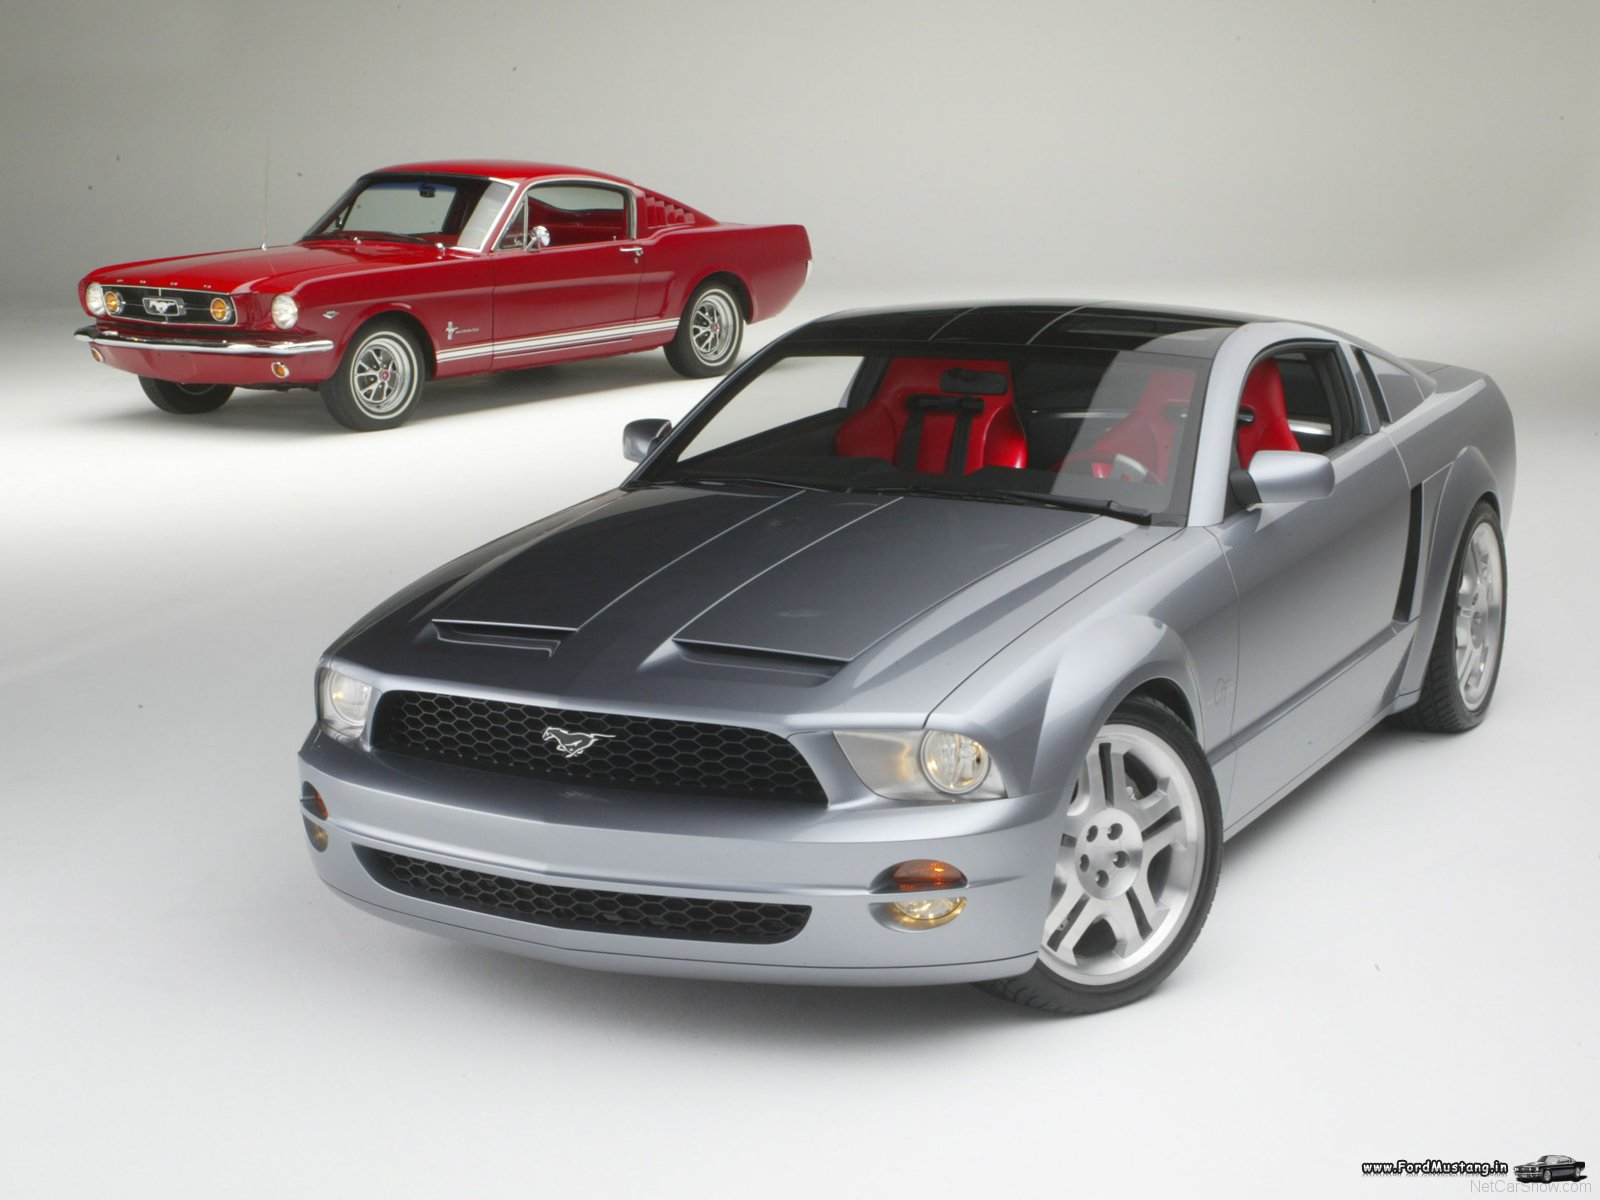 Ford Mustang Shelby Gt500 Eleanor Wallpaper Hd Wallpaper Ford Mustang Ford Mustang Bullitt Ford